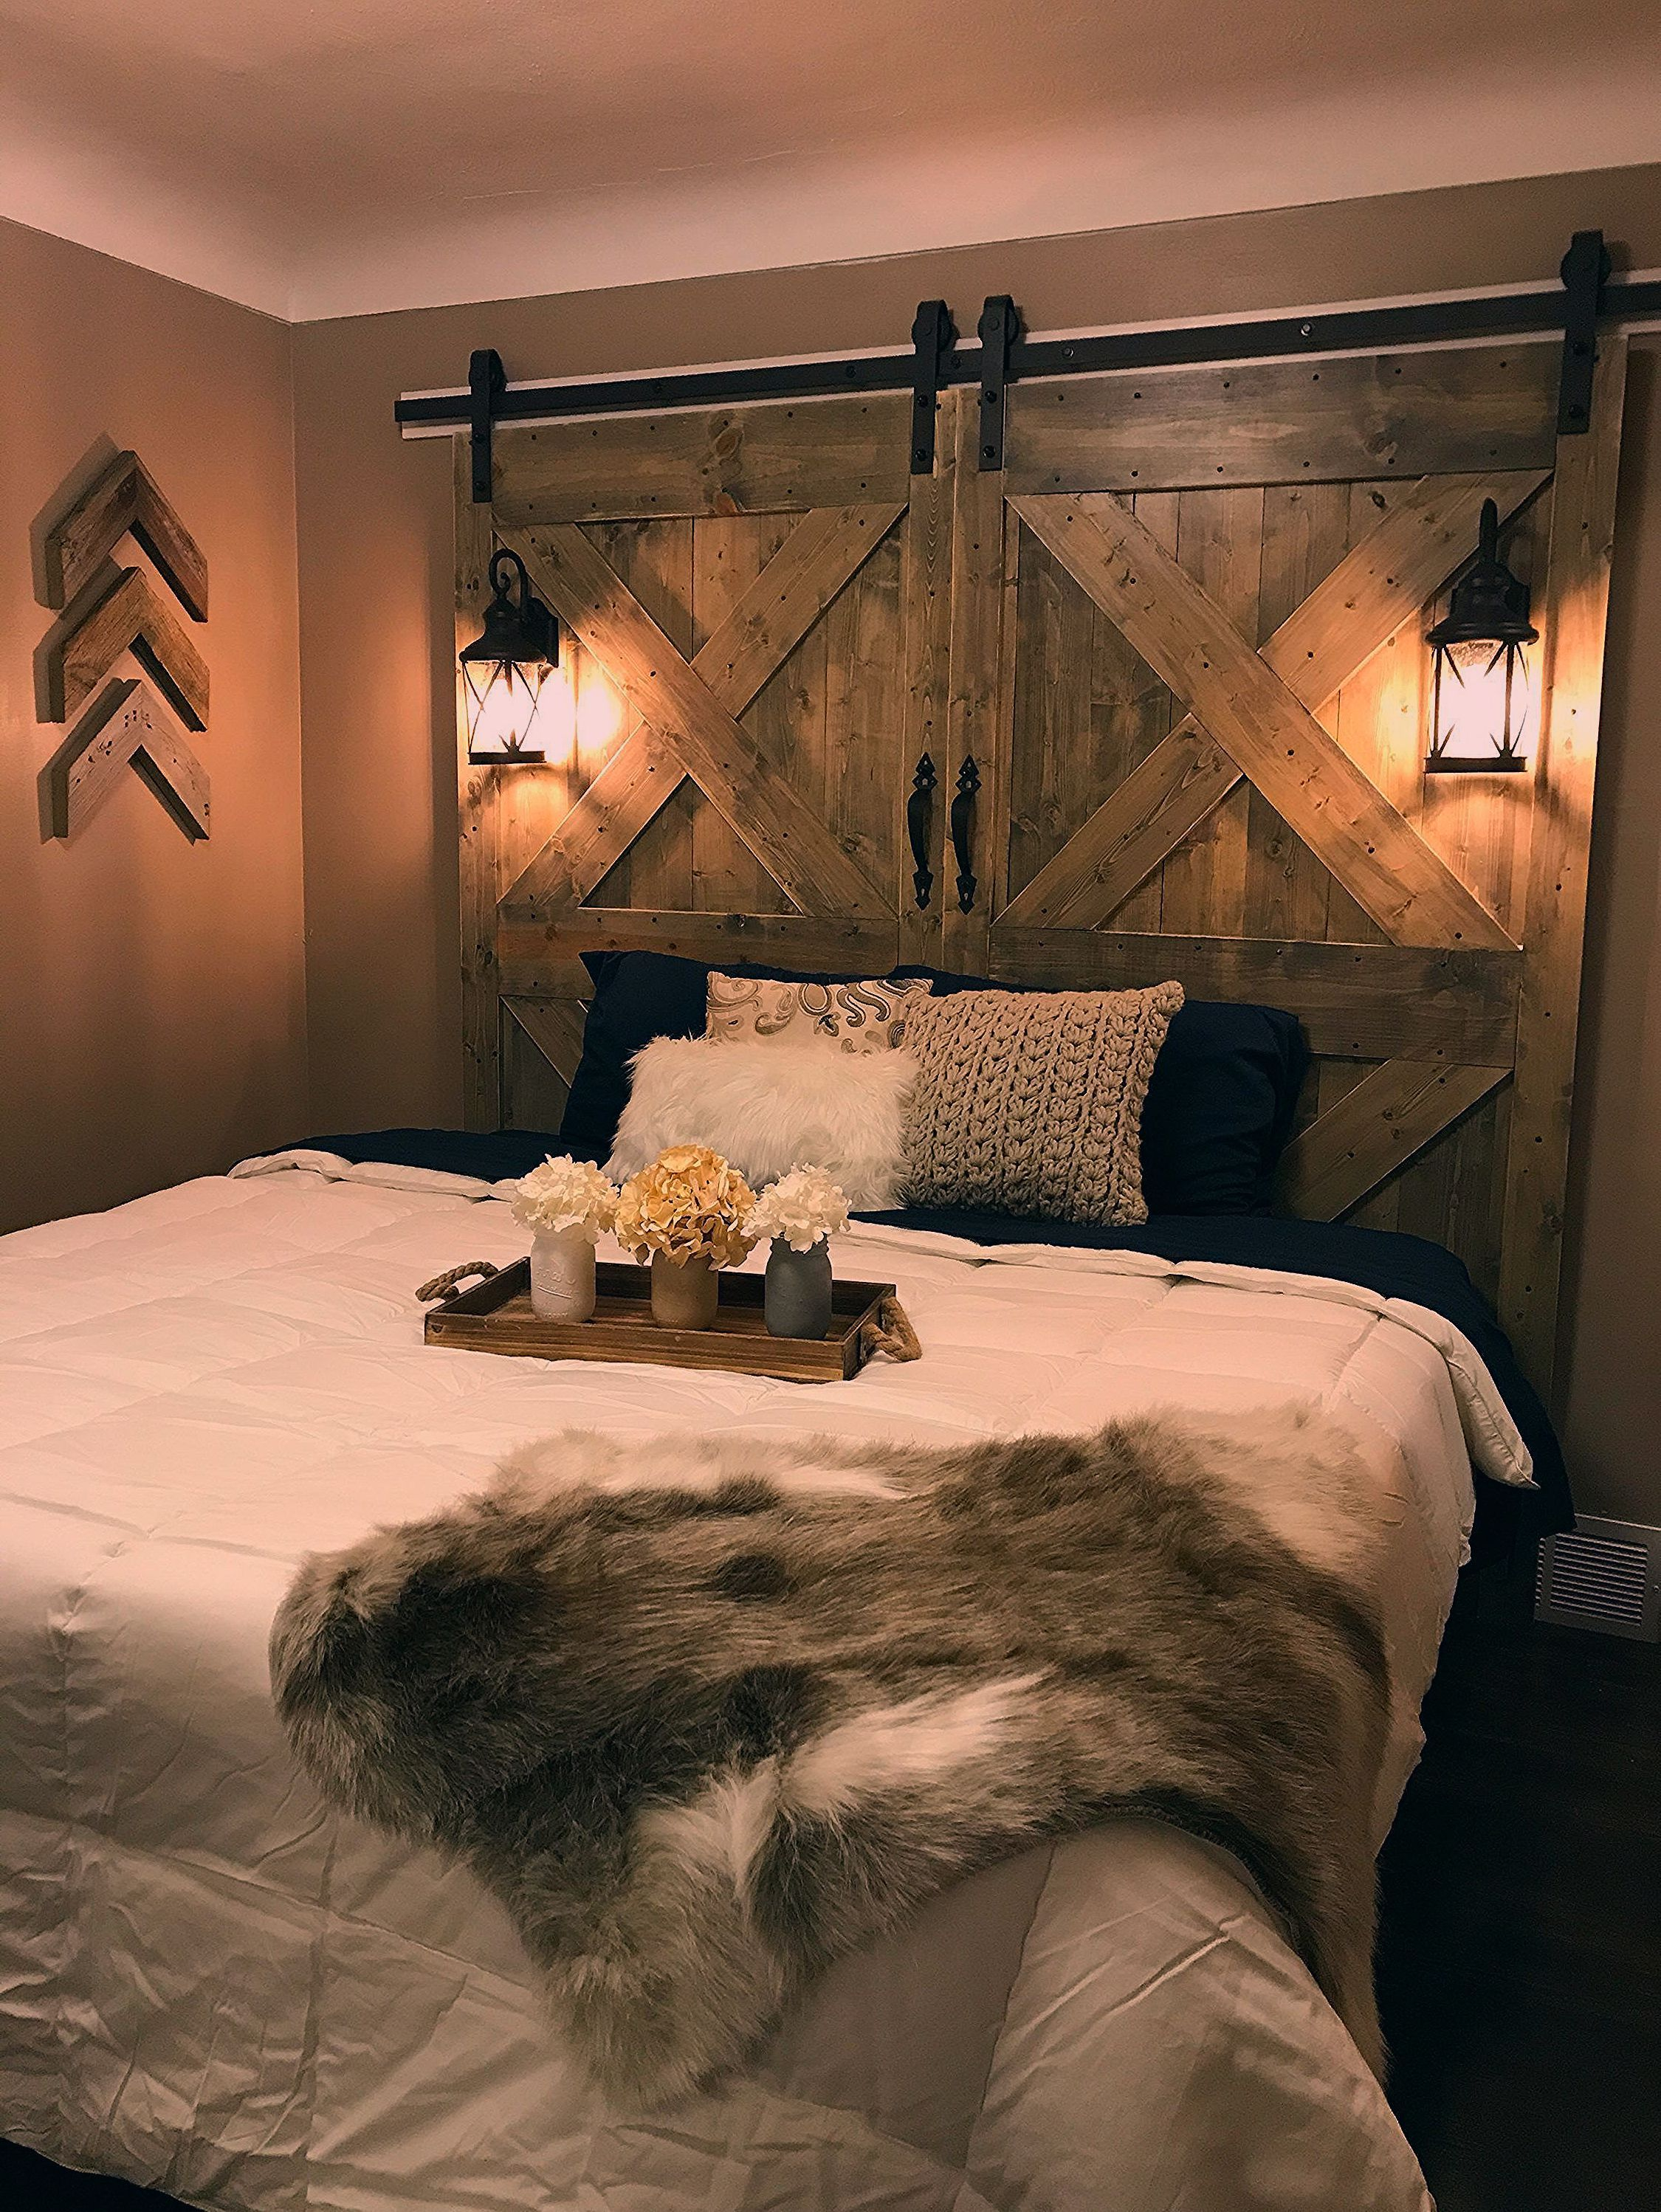 Exciting Ideas for DIY Headboard Designs Exciting Ideas for DIY Headboard Designs  If you wanted to convert your yawn producing bedroom to an elegant sanctuary you need t...